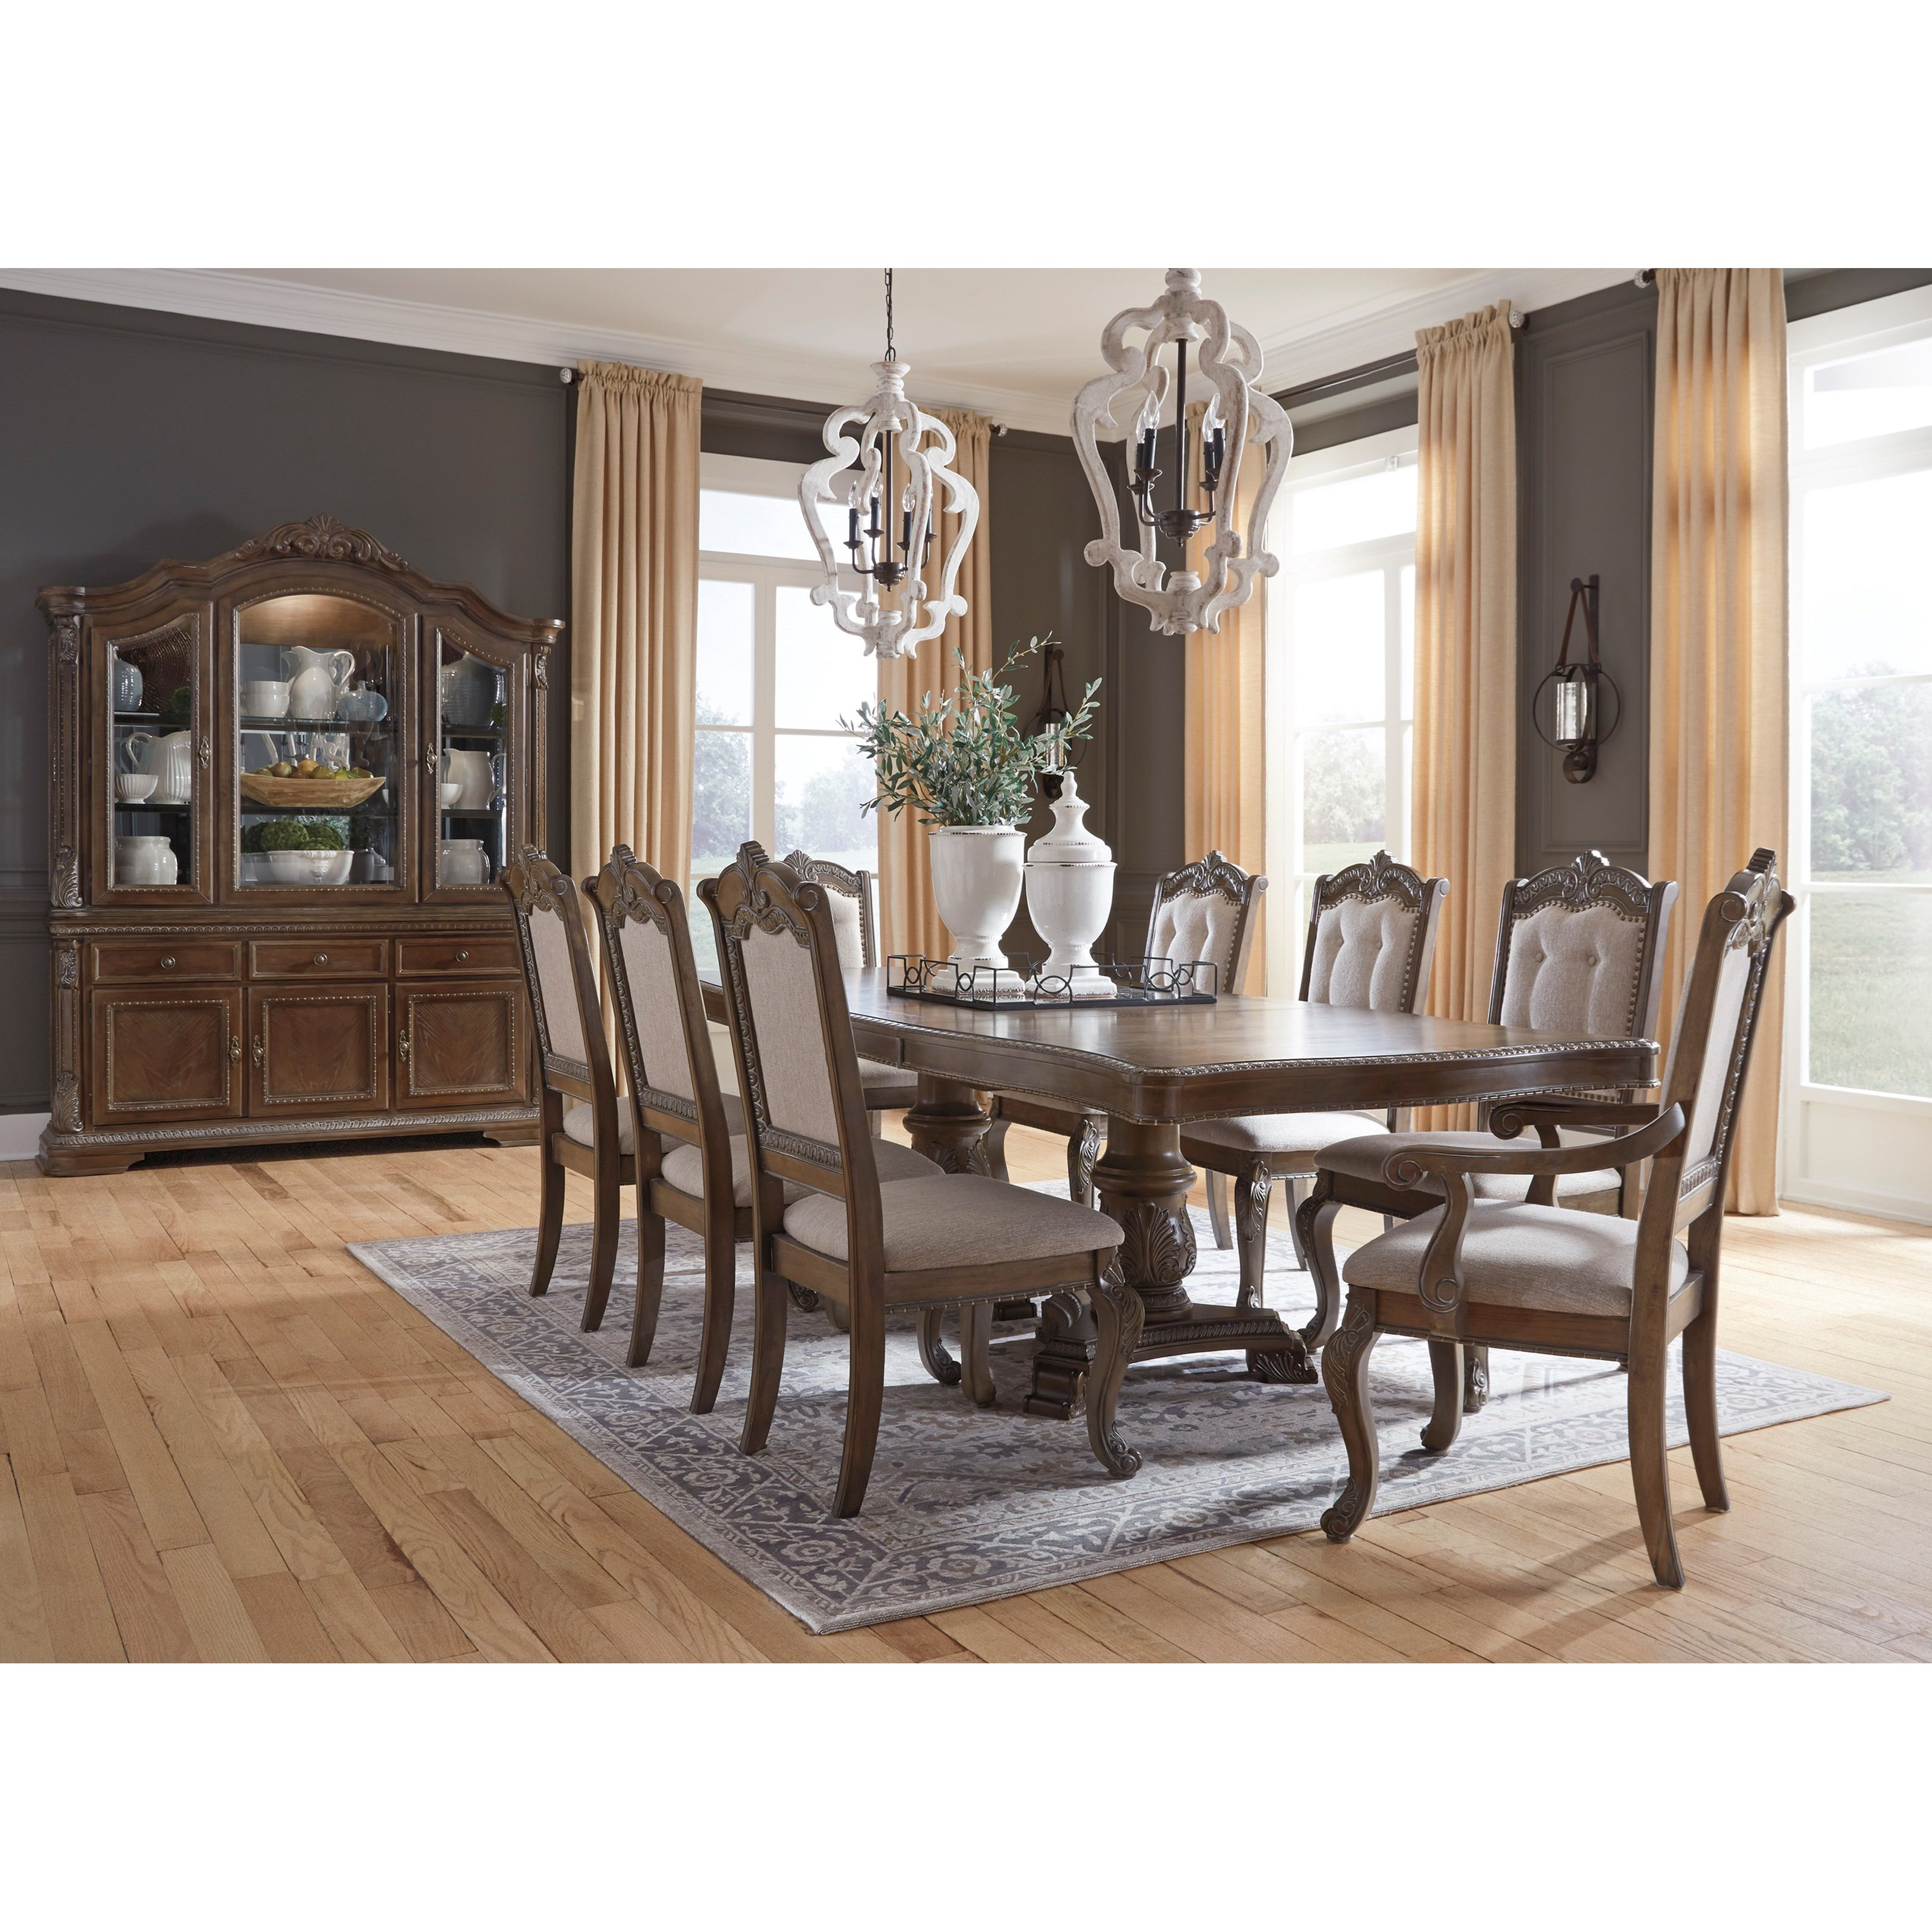 Charmond Formal Dining Room Group by Signature Design by Ashley at Northeast Factory Direct